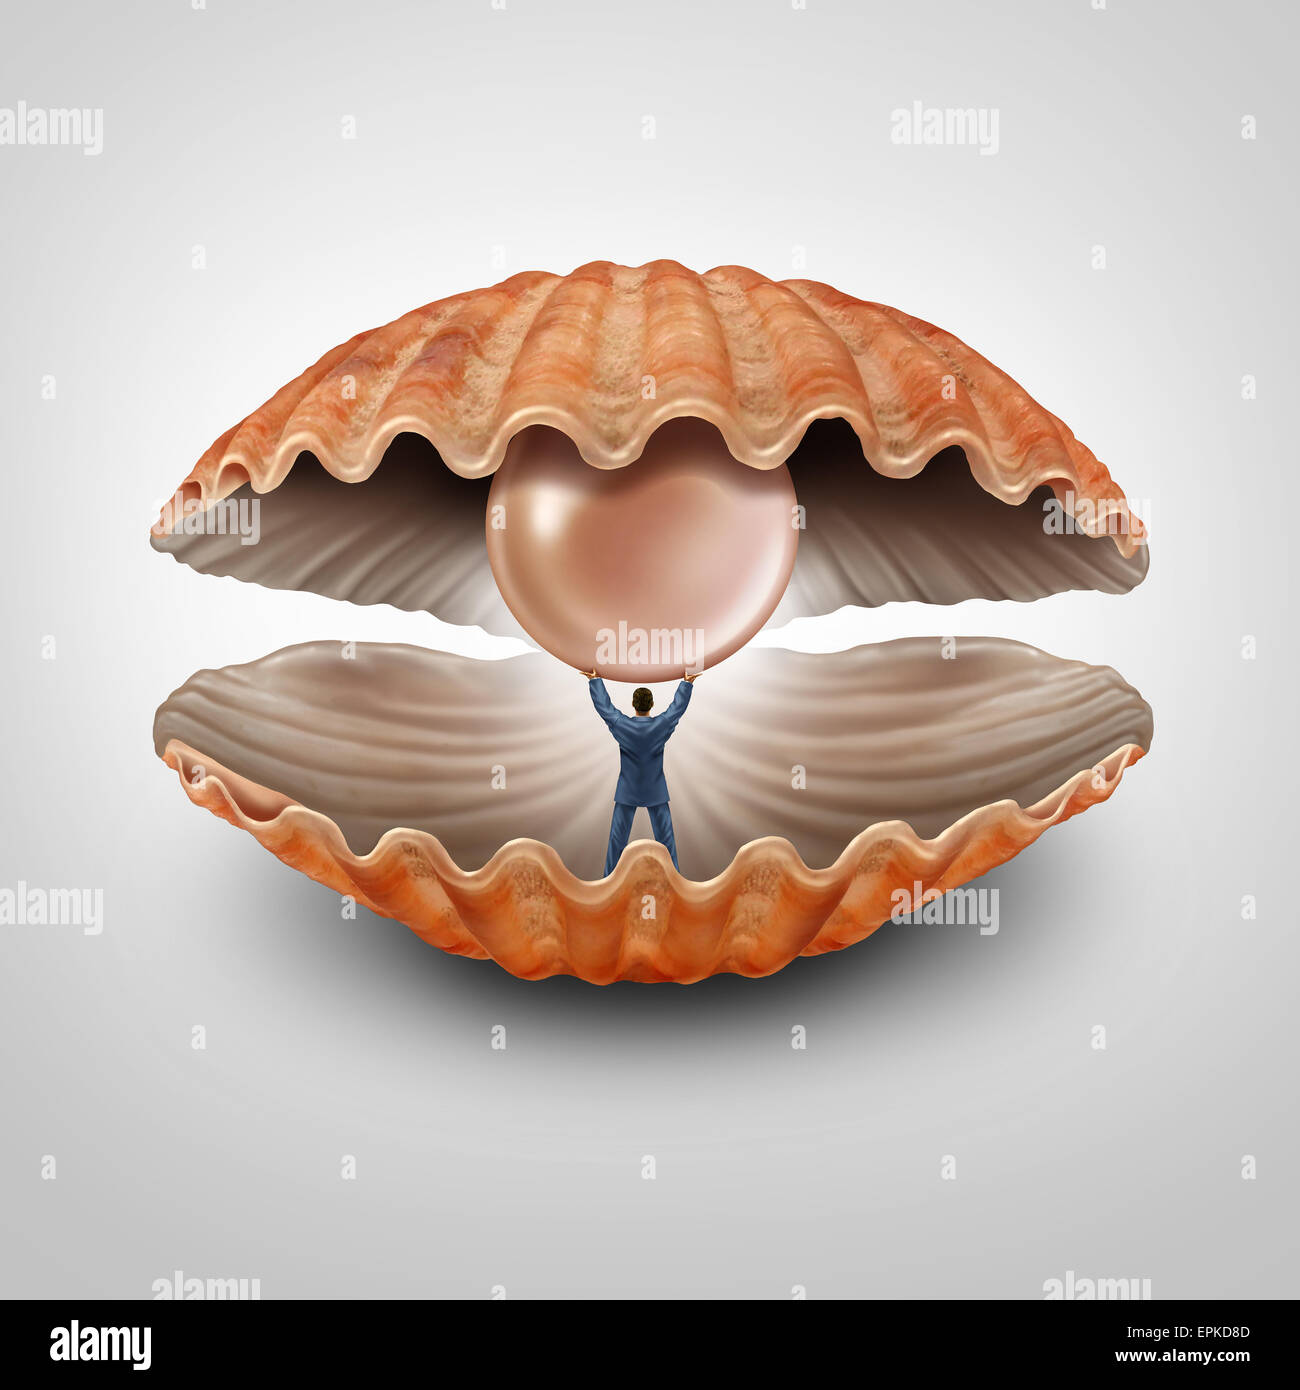 Finding fortune business concept as a businessman inside an open seashell holding and lifting up a giant precious - Stock Image